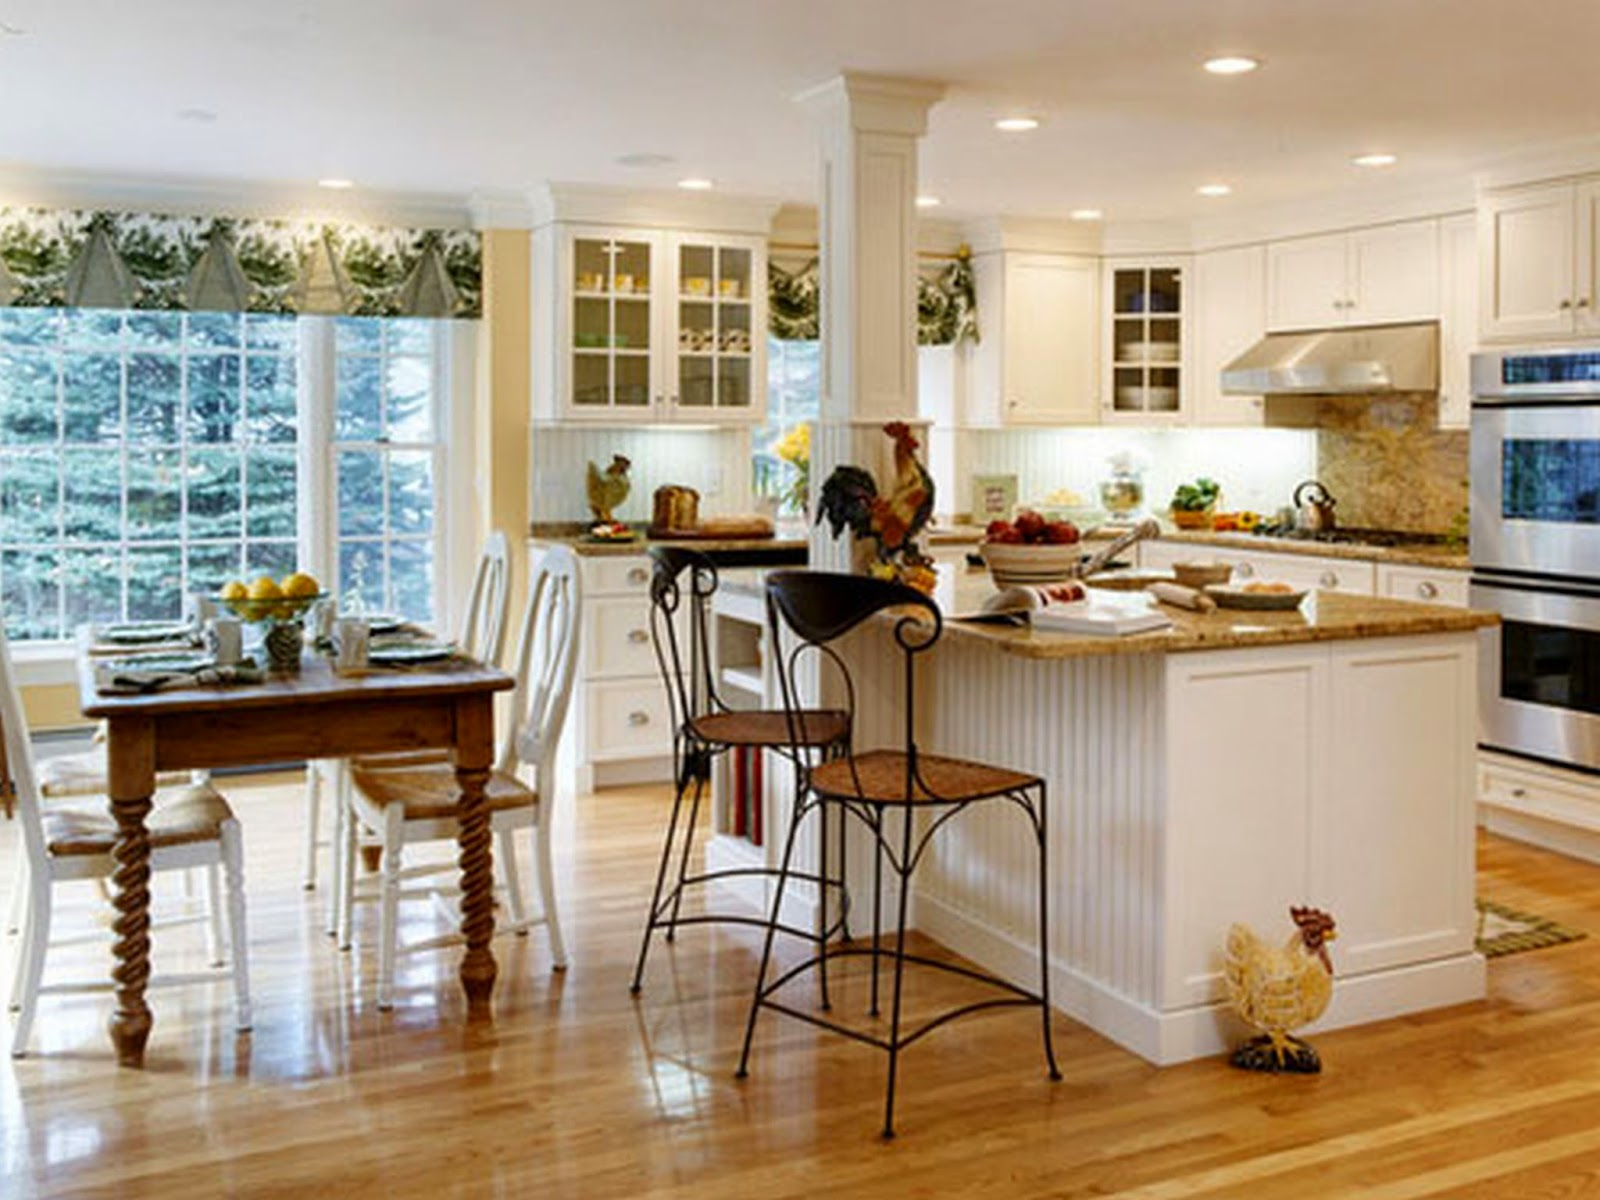 Kitchen Wall Decorating Ideas to Level Up Your Kitchen ... on Modern Kitchen Decorations  id=89768